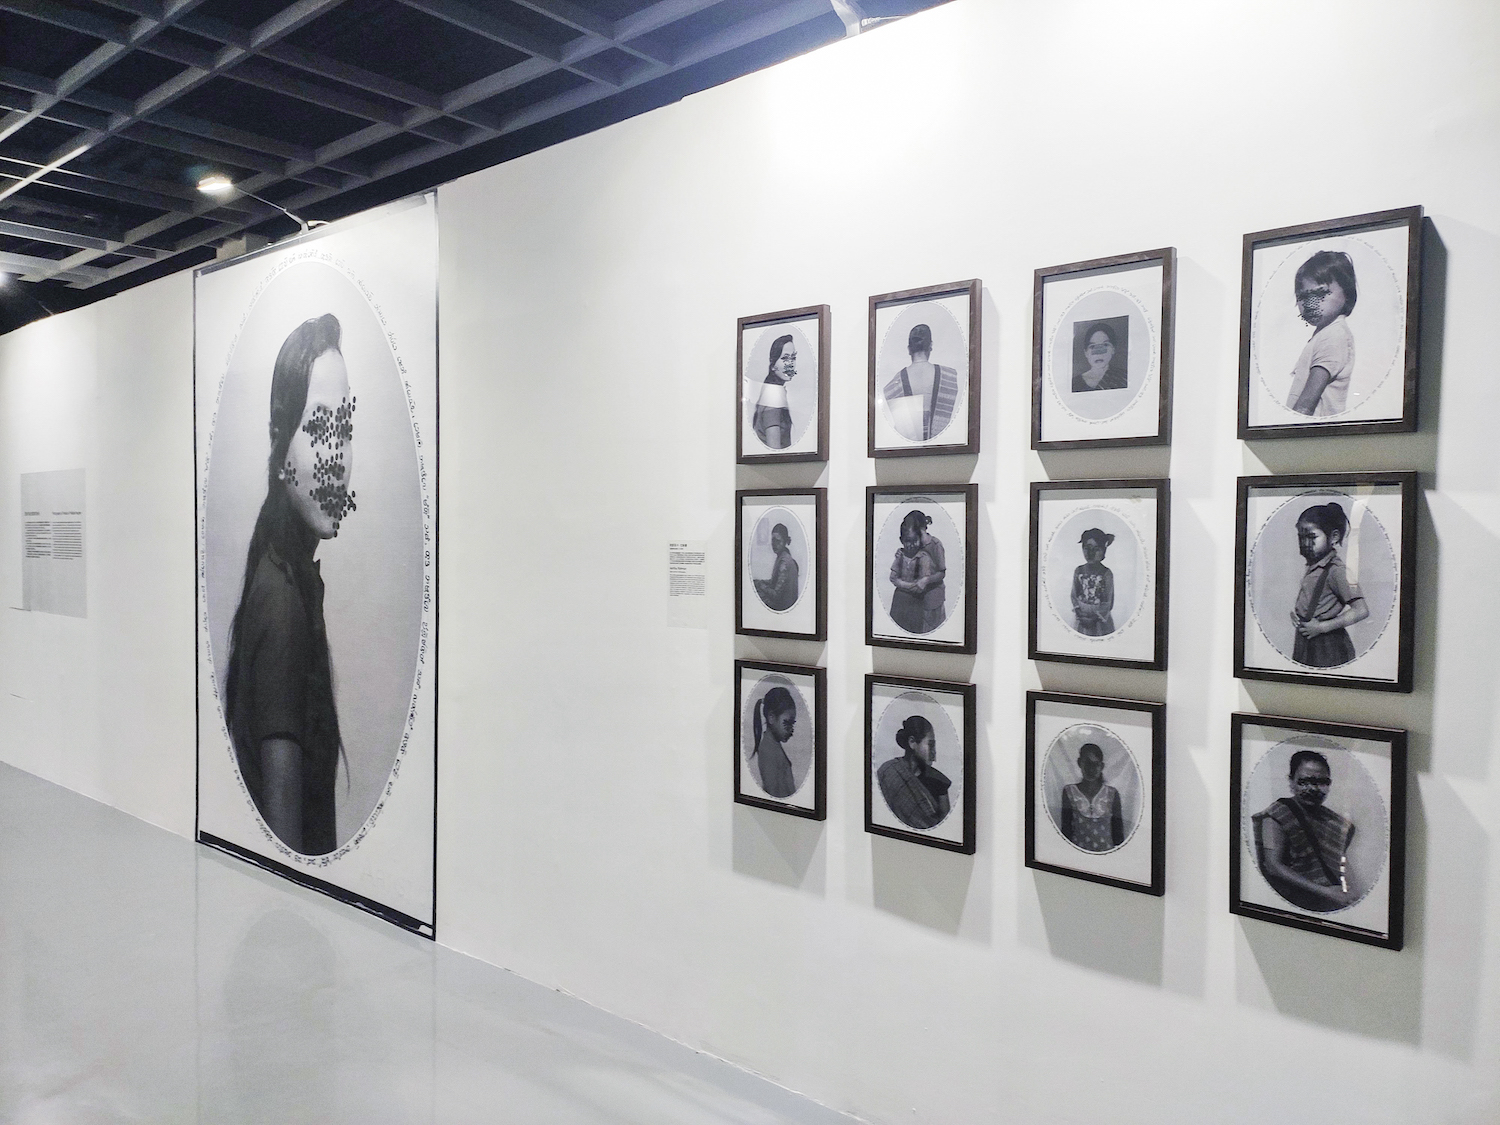 Ashfika Rahman, Rape is Political, 2019. Installation view. Jimei x Arles international photo festival, CN. Photographer: The Alkazi Foundation.